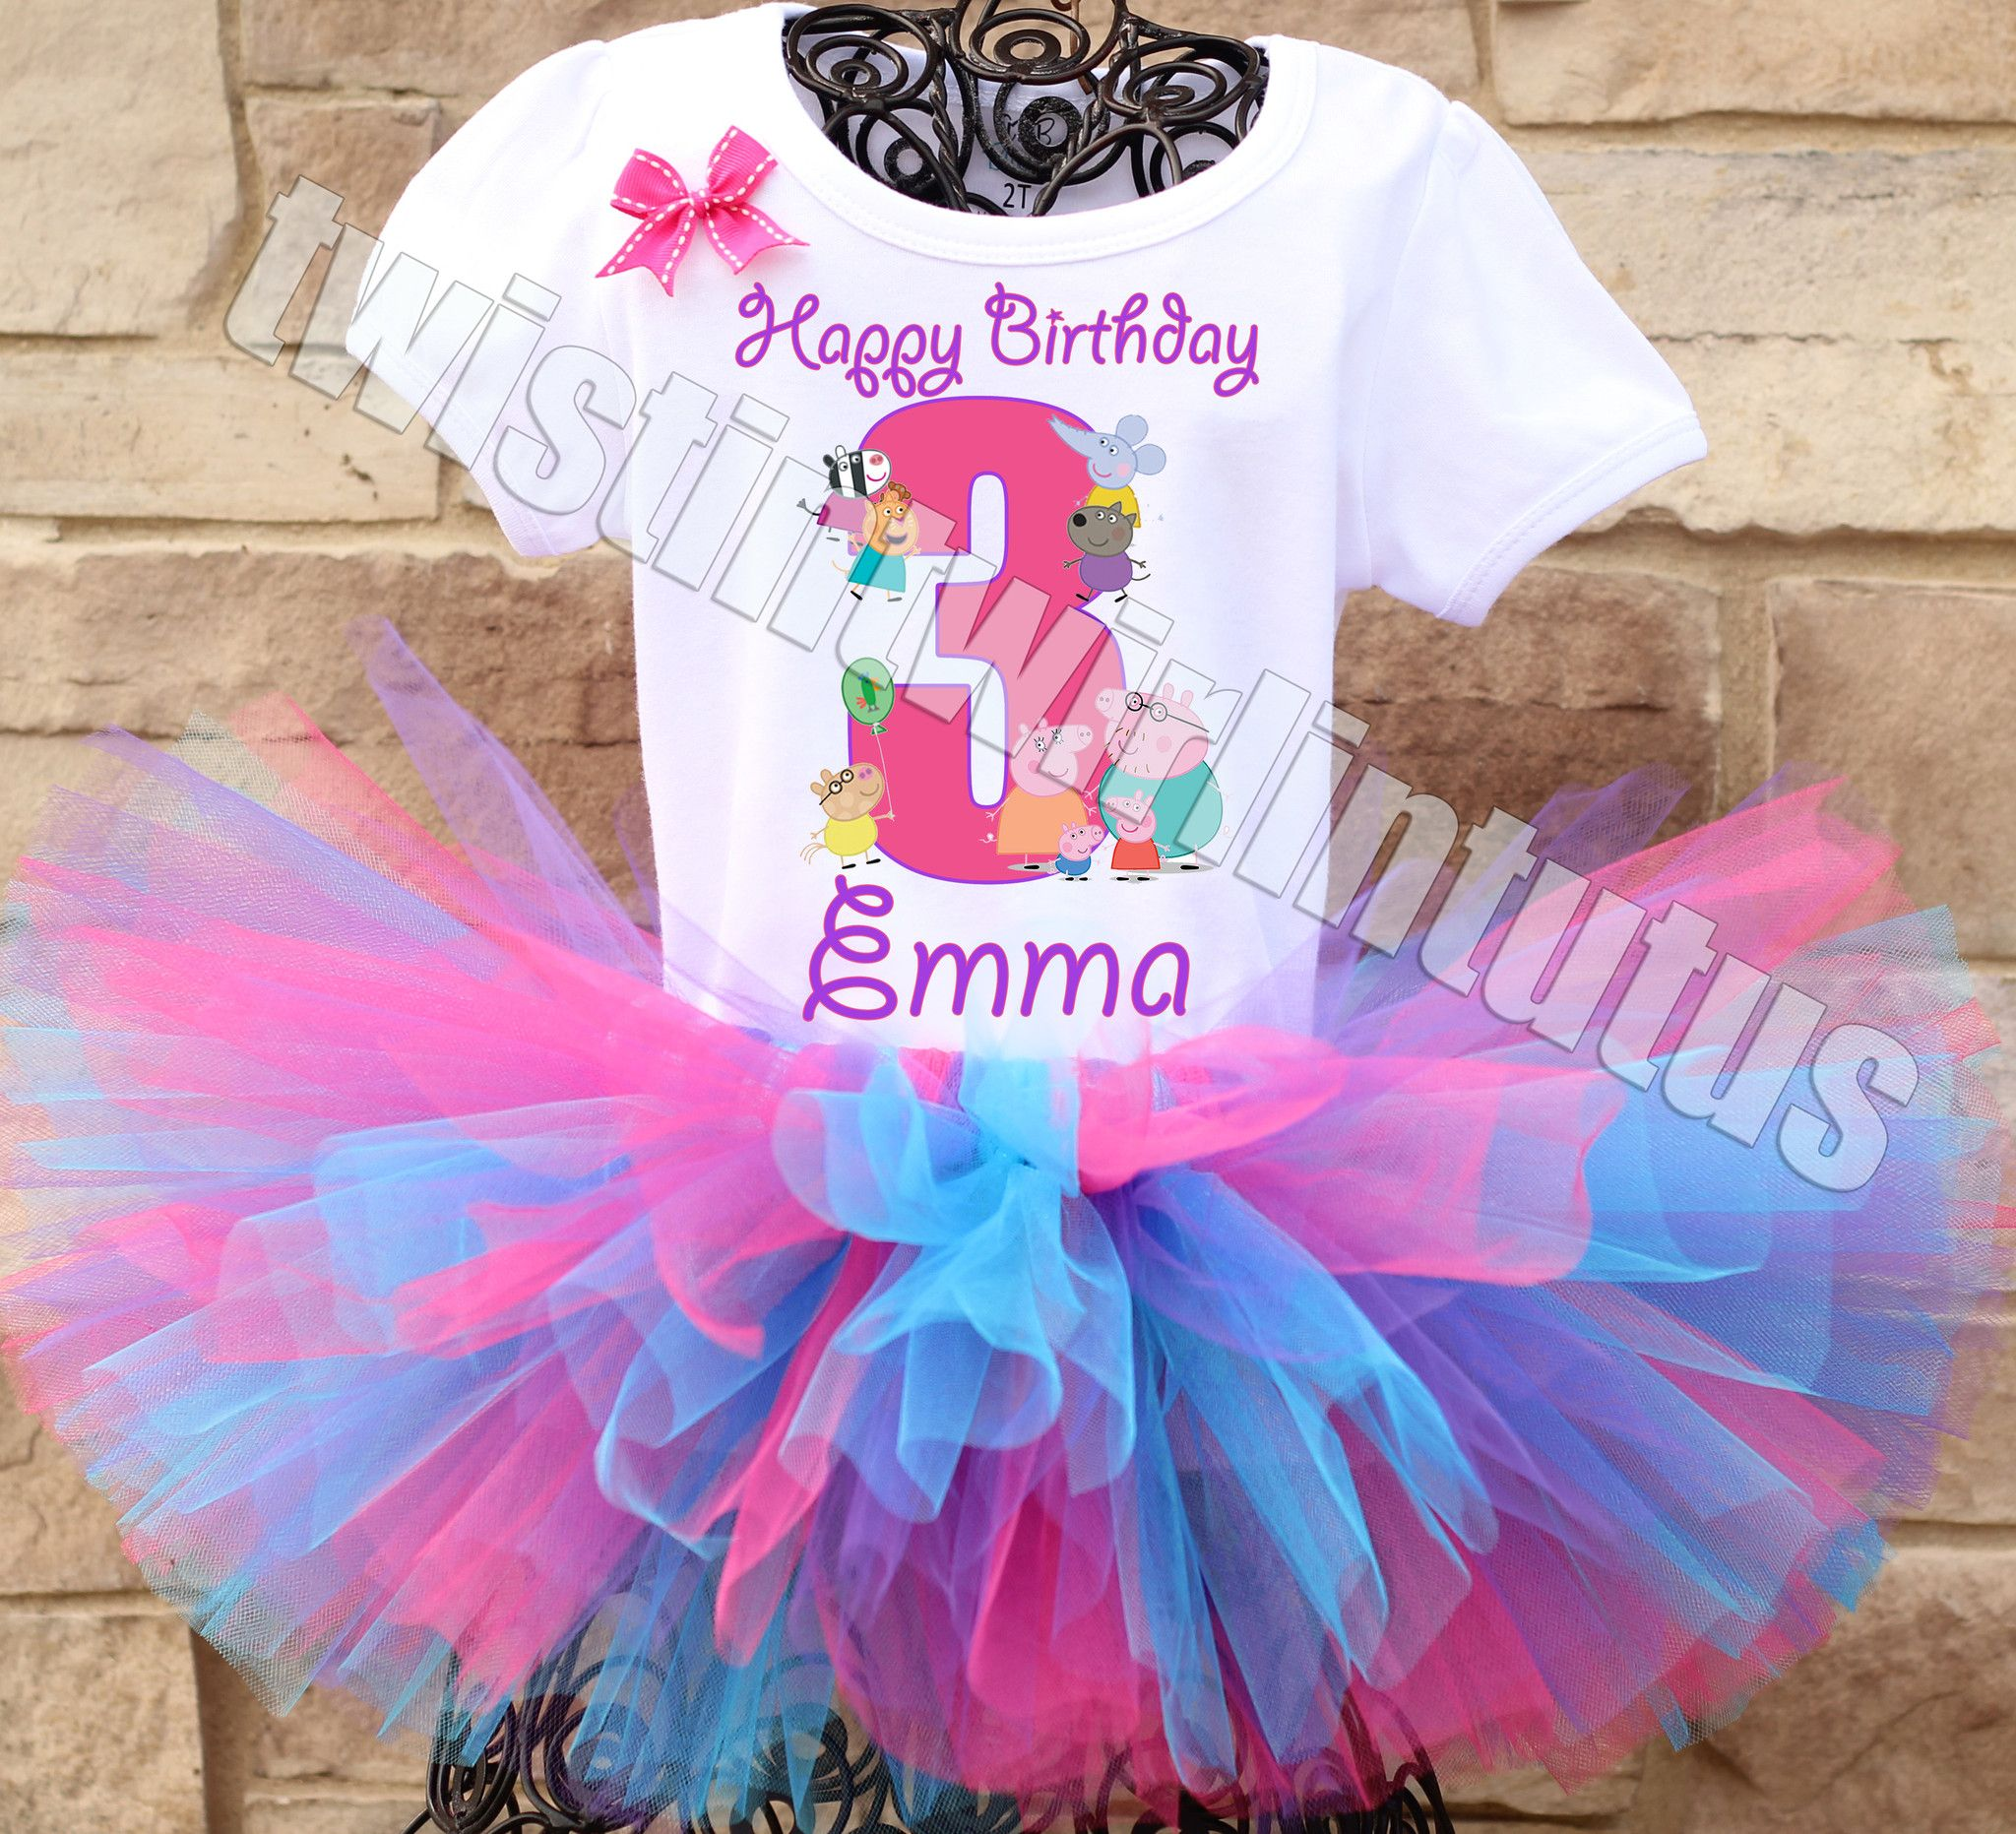 Peppa Pig Birthday Party Ideas | Peppa Pig Birthday Outfit | Peppa Pig Birthday Shirt | Peppa Pig Family Shirts | Birthday Party Ideas for Girls | Twistin Twirlin Tutus #birthdaypartyideas #peppapigbirthday  http://www.twistintwirlintutus.com/products/peppa-pig-birthday-outfit-2